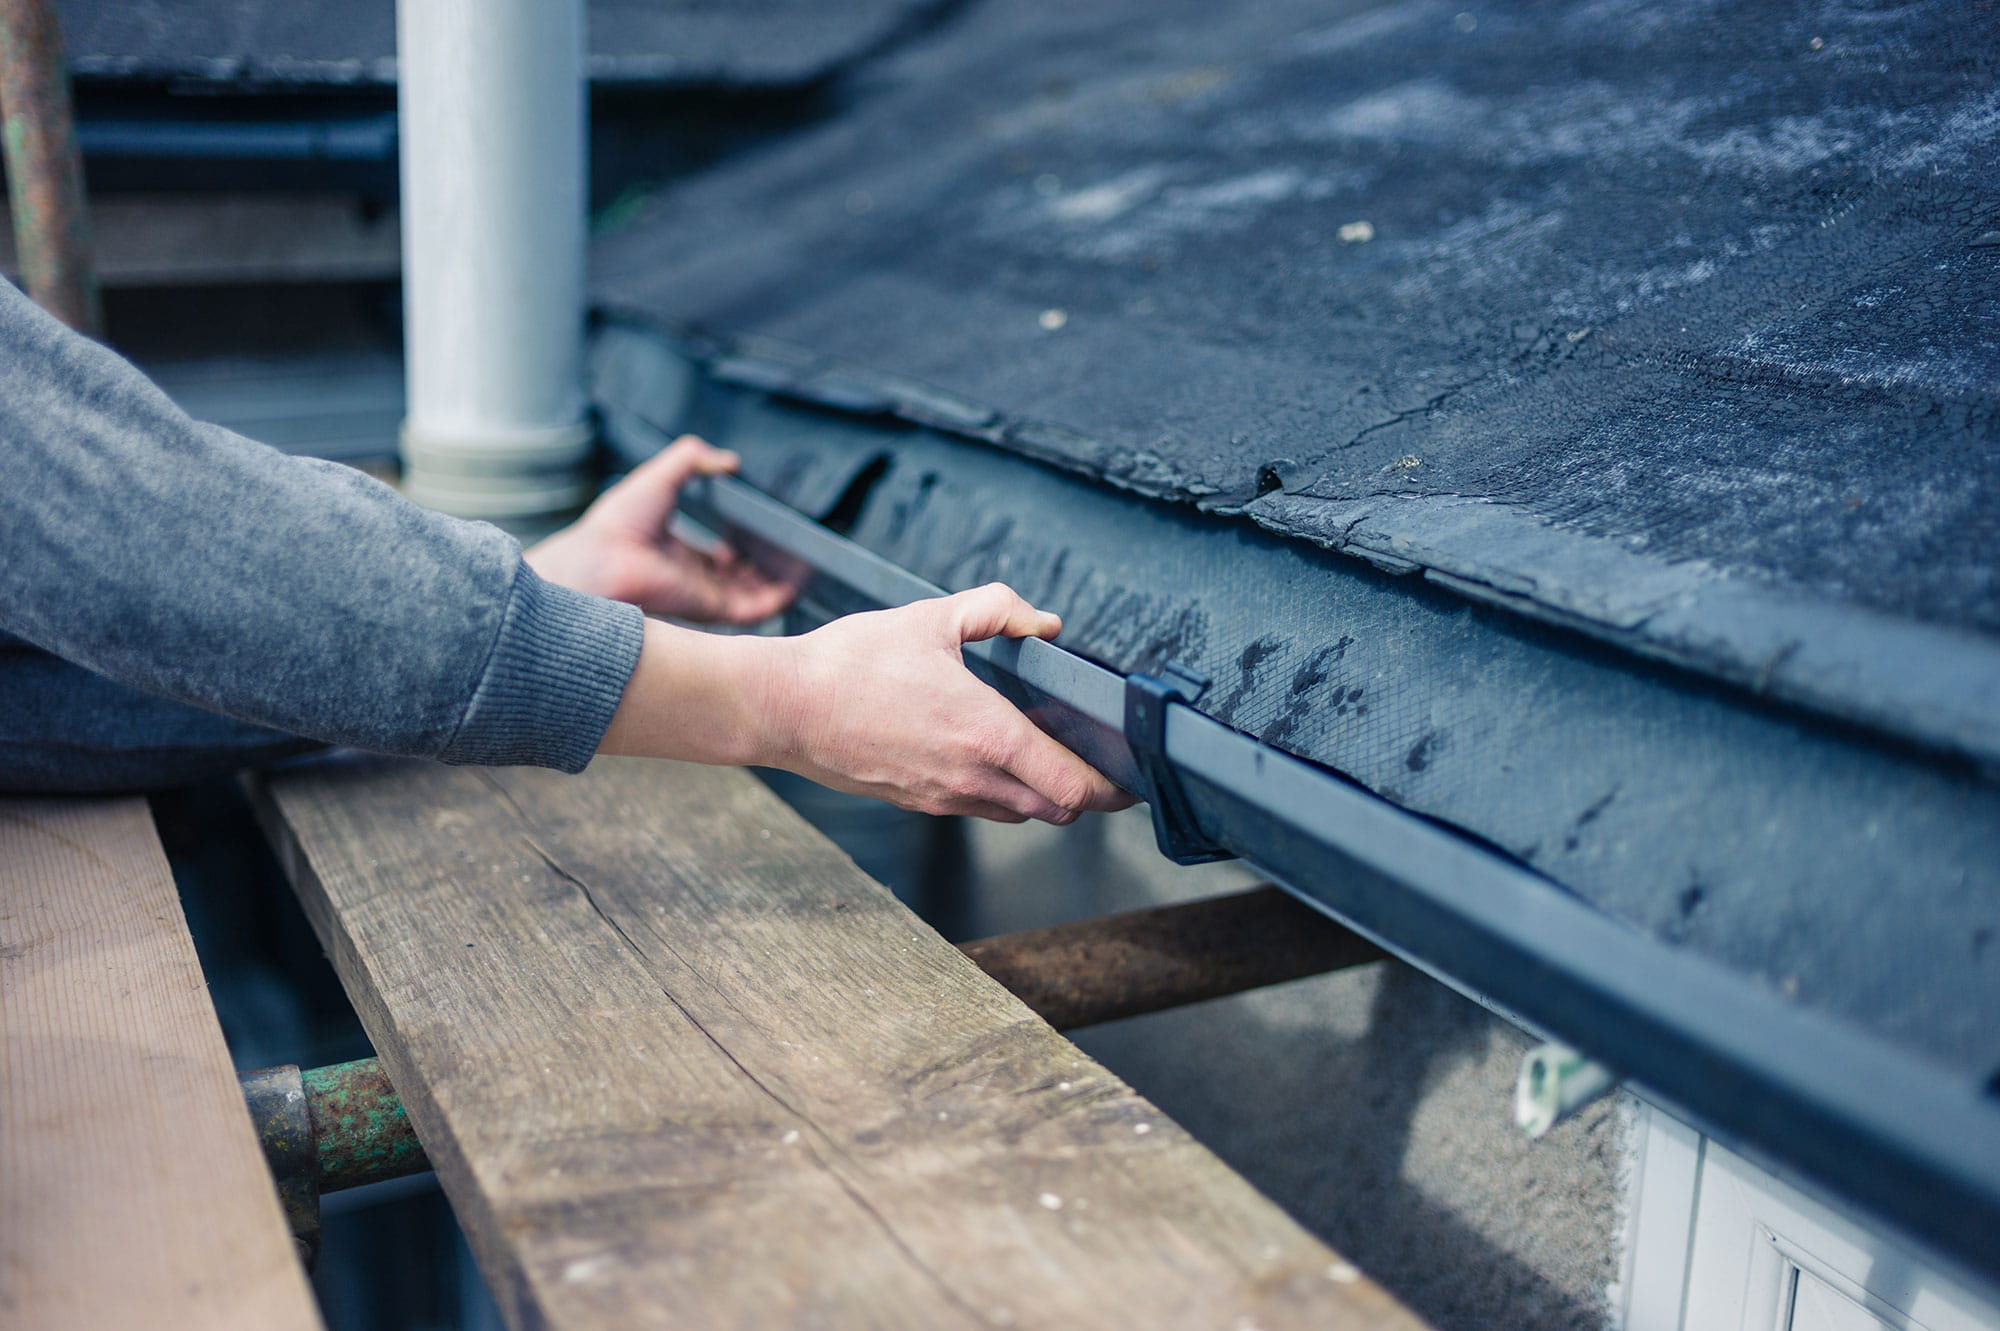 Hands adjusting gutter on roof